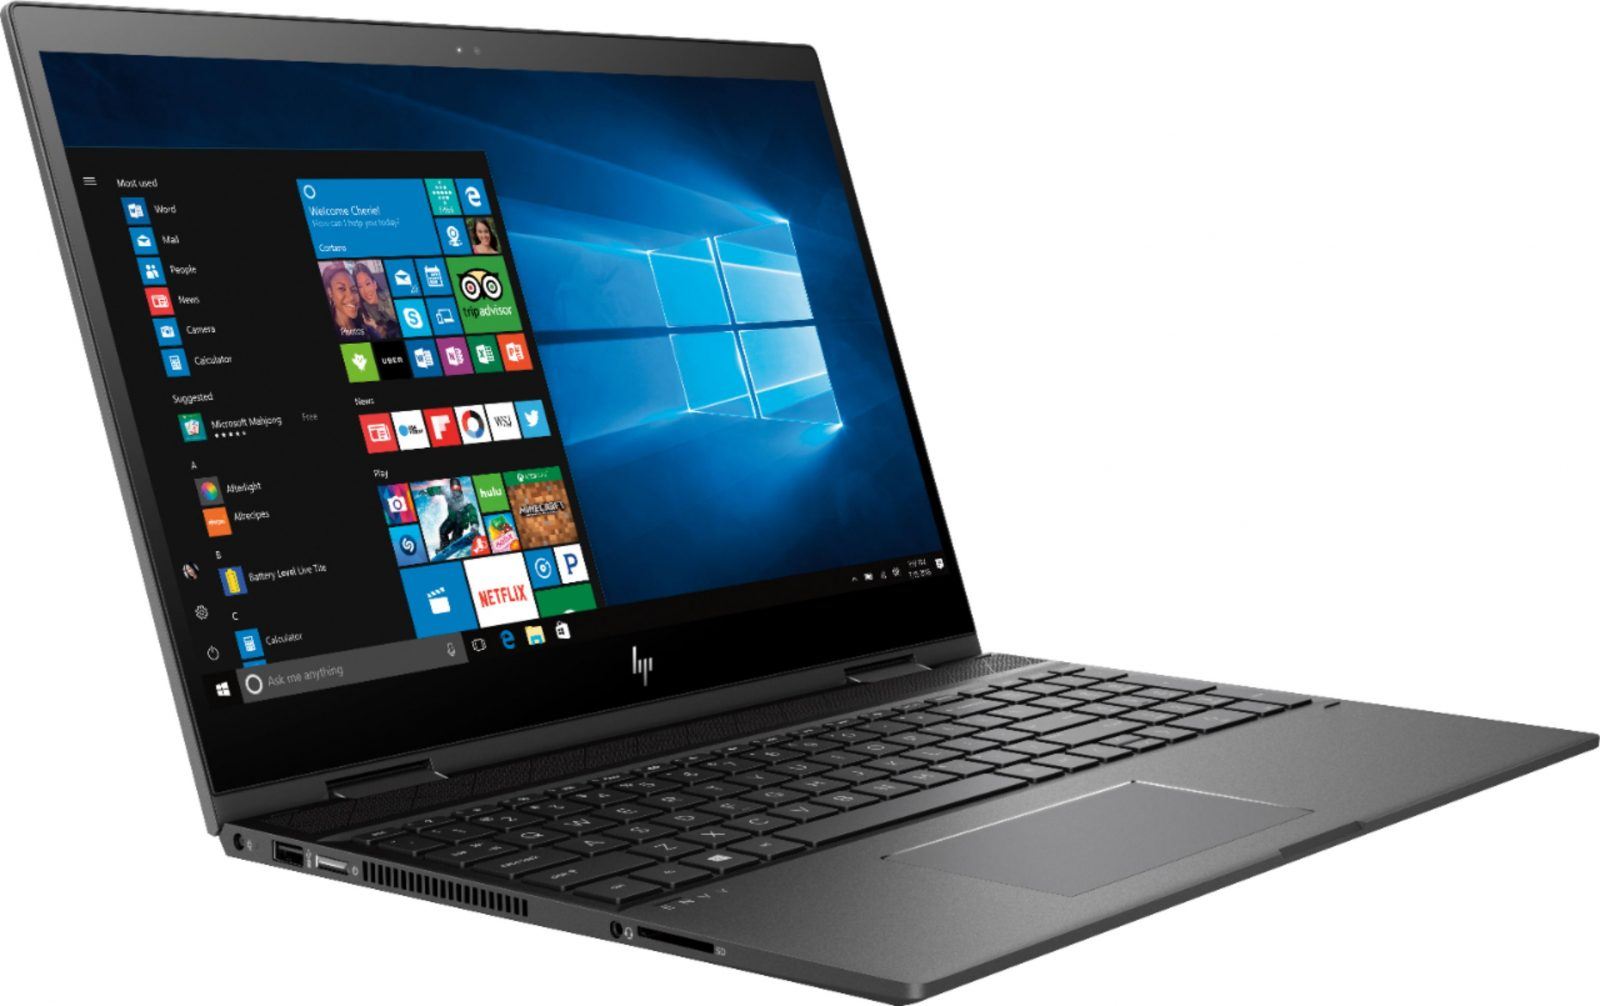 HP Envy x360 Laptop at Best Buy - Tech review by Misty Nelson frostedevents.com